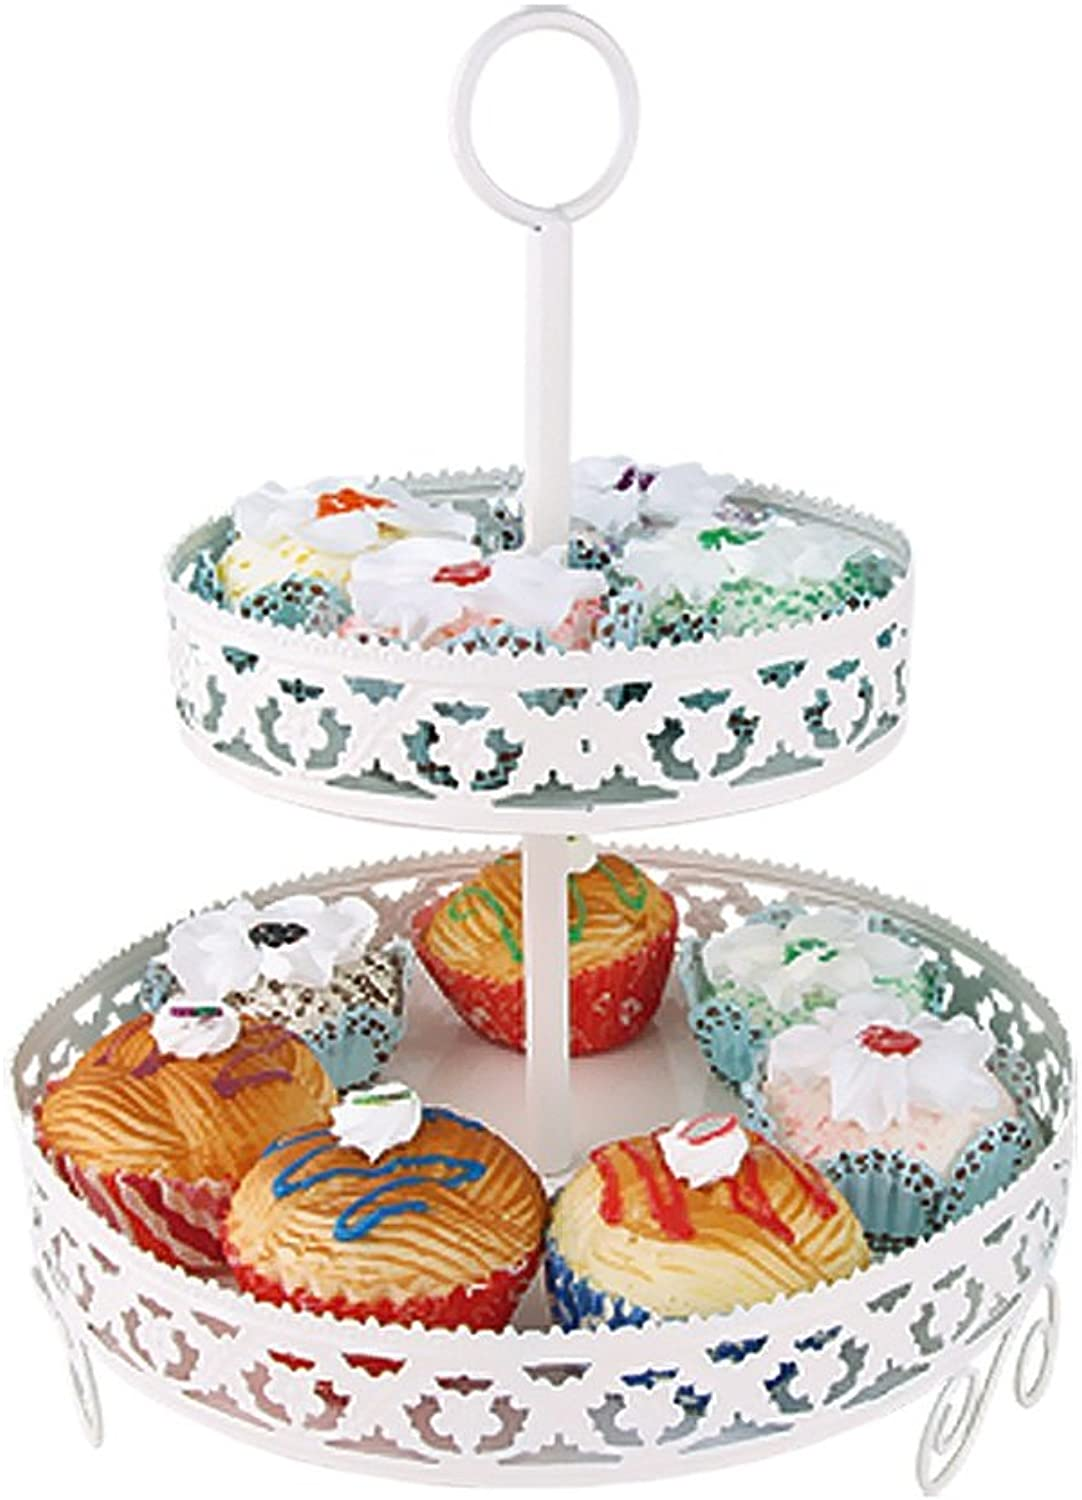 YZ1805, Collier multicouches Rack Irons Fête d'anniversaire Mariages Dessert Bakery Frame Cupcakes Rack